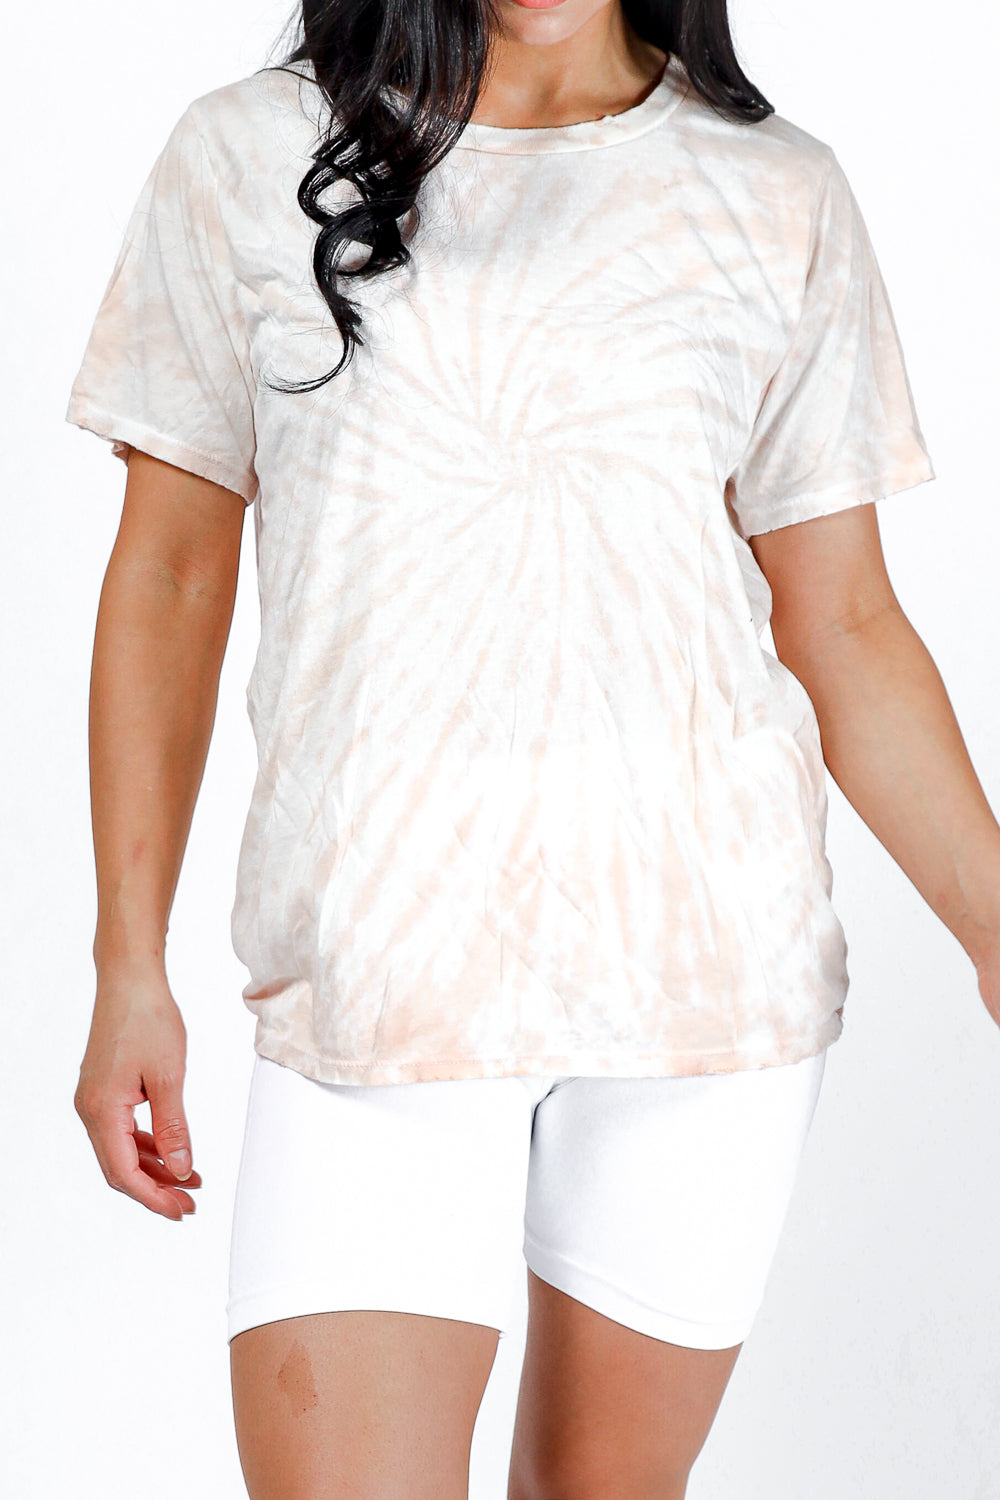 Blush Tie-Dye Distressed Tee PREORDER